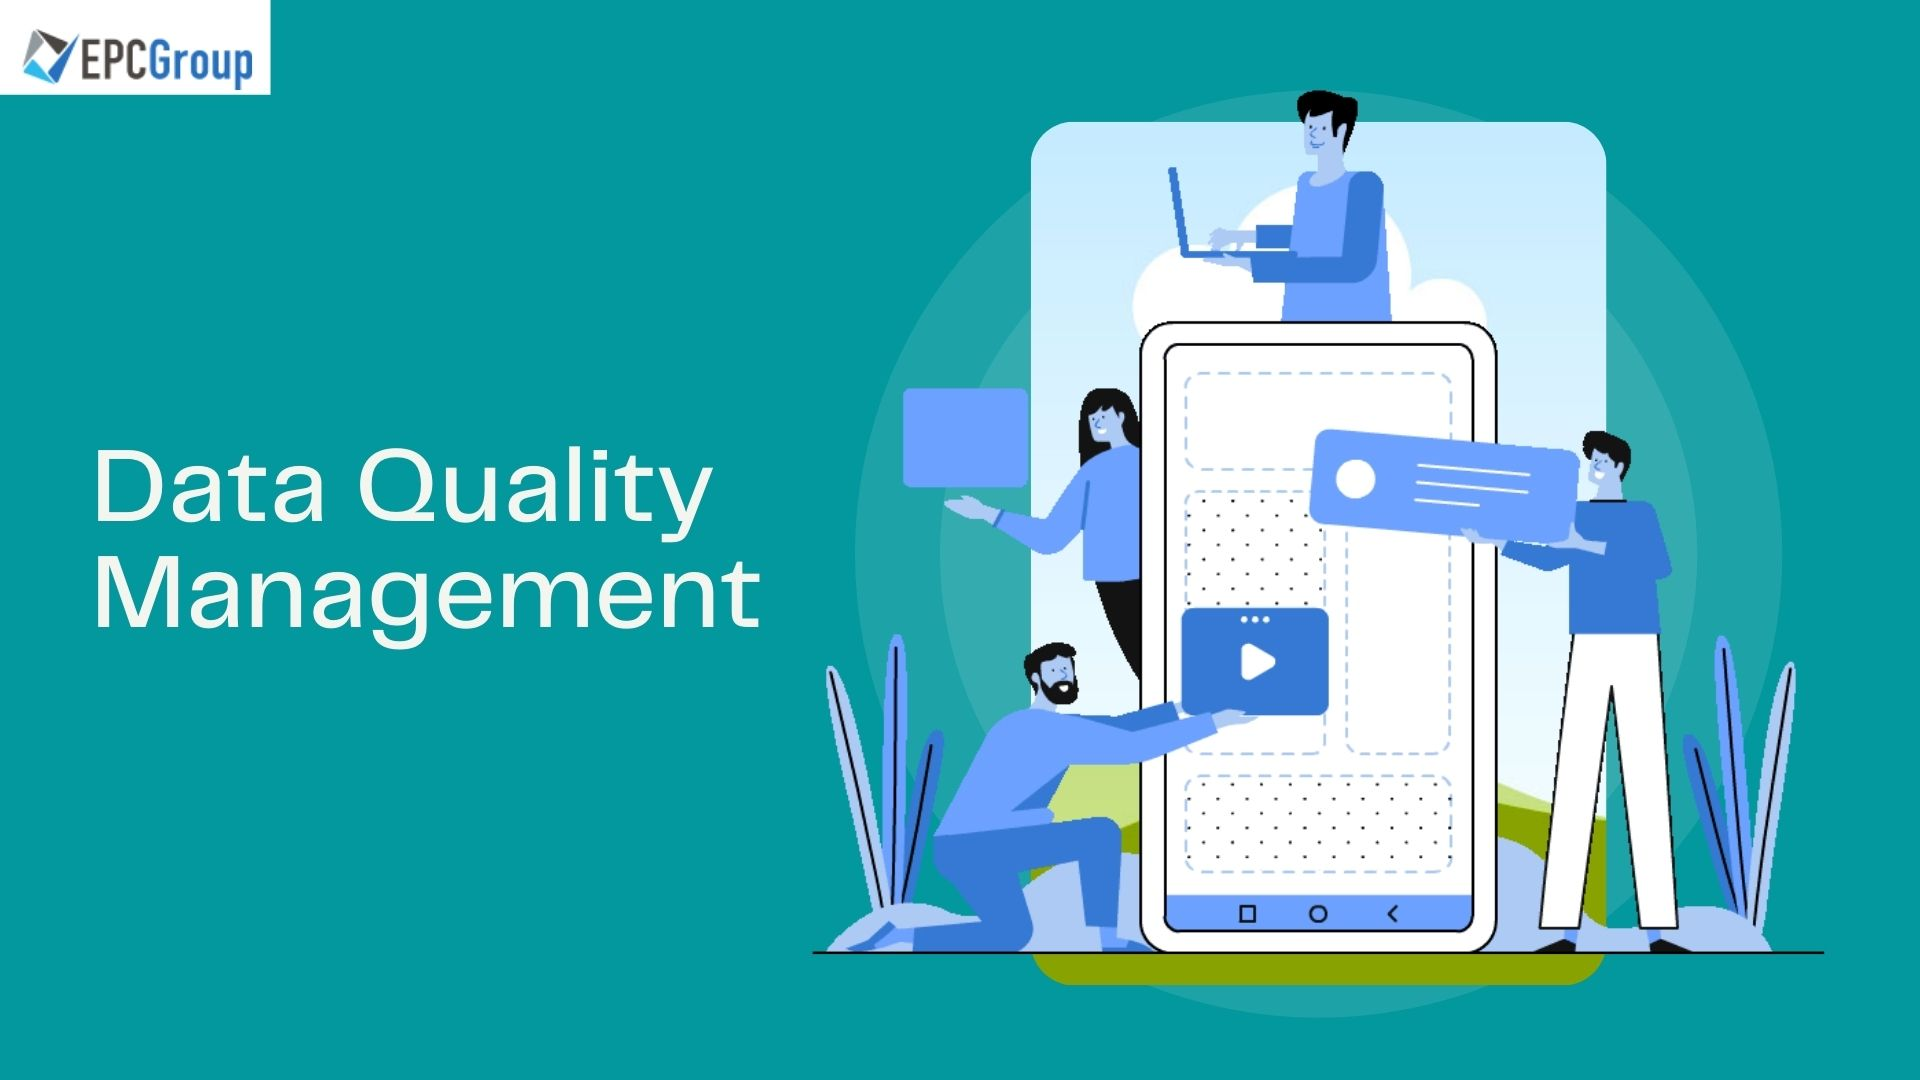 Data Quality Management Best Practices - thumb image